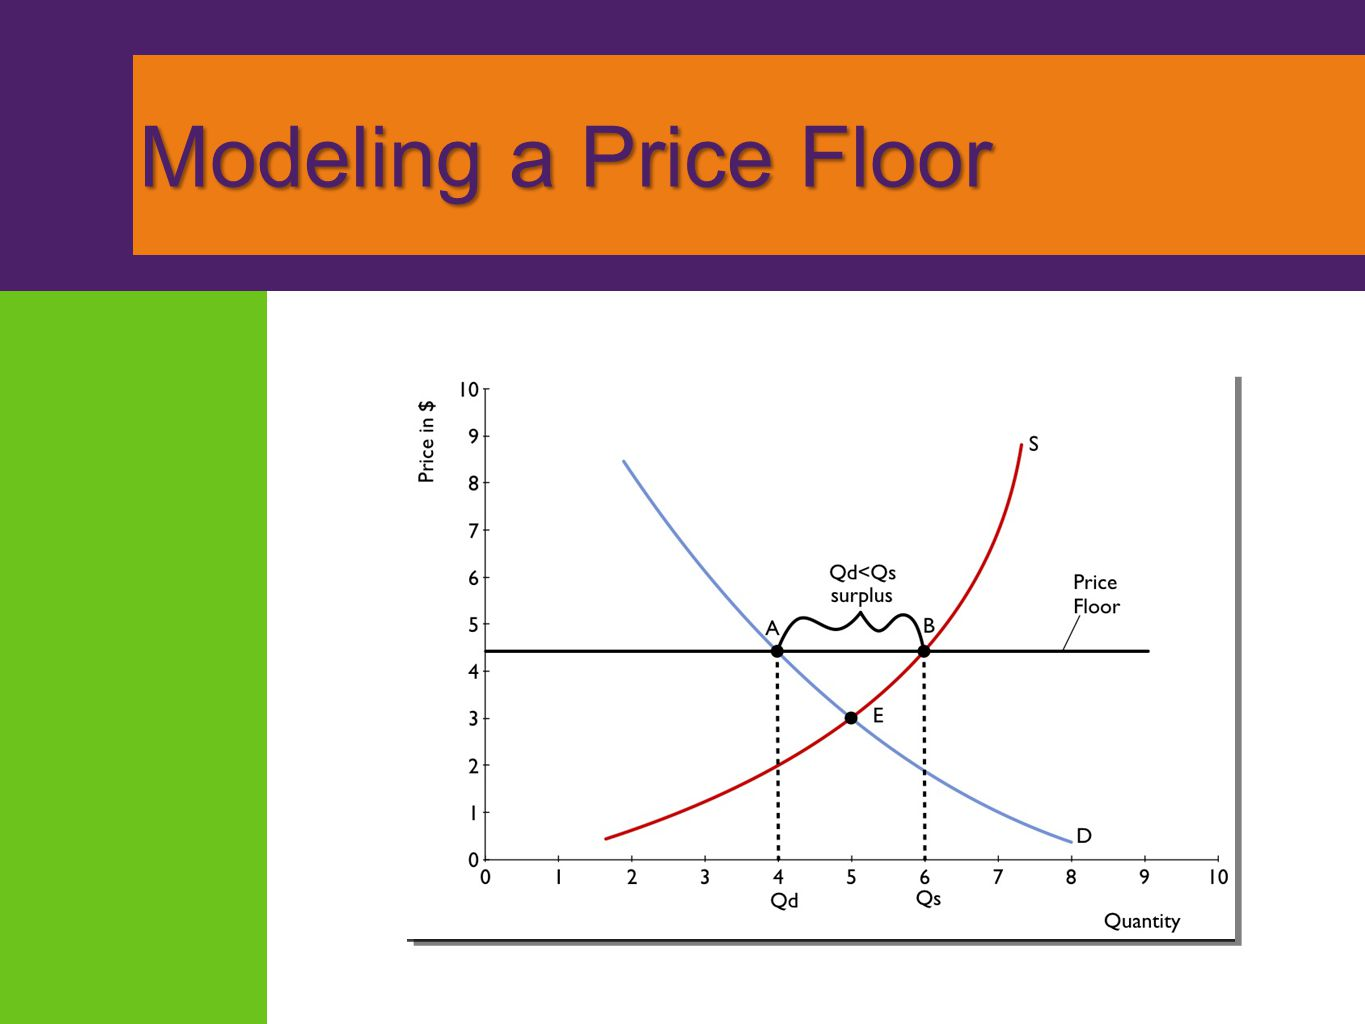 Modeling a Price Floor